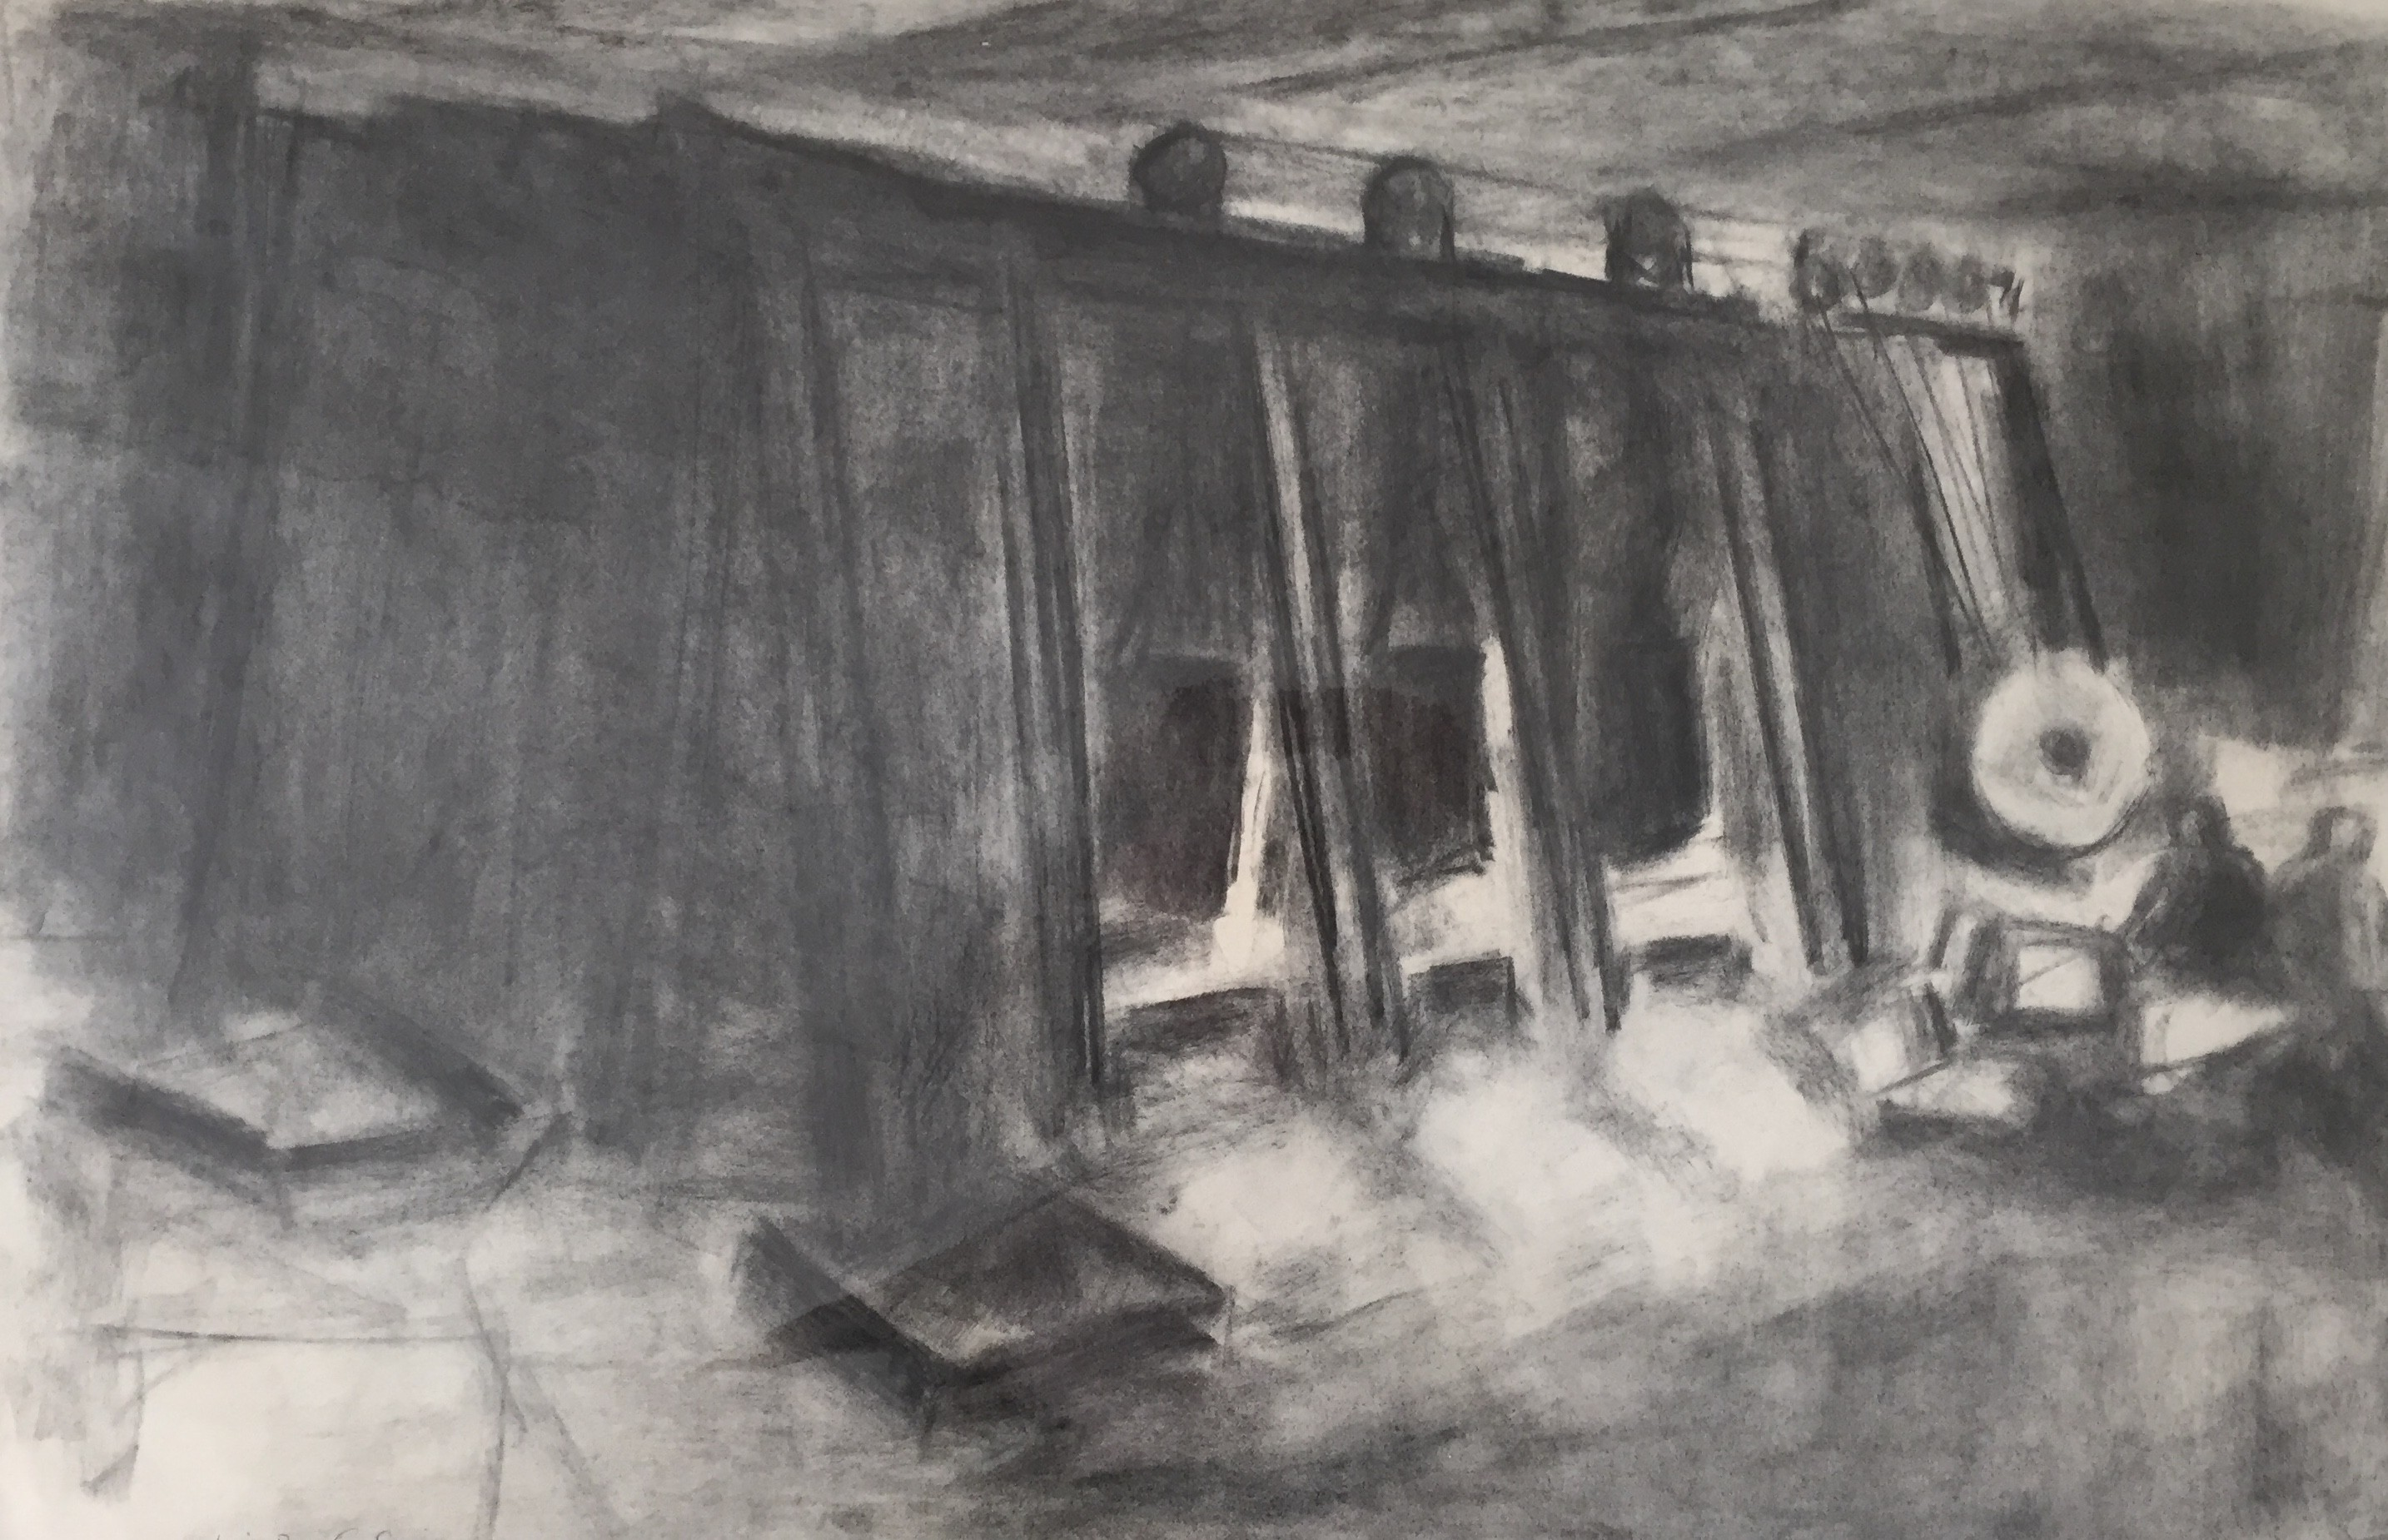 Interior of a Sheet Metal Factory, Gorseinon  20x30 ins   Charcoal